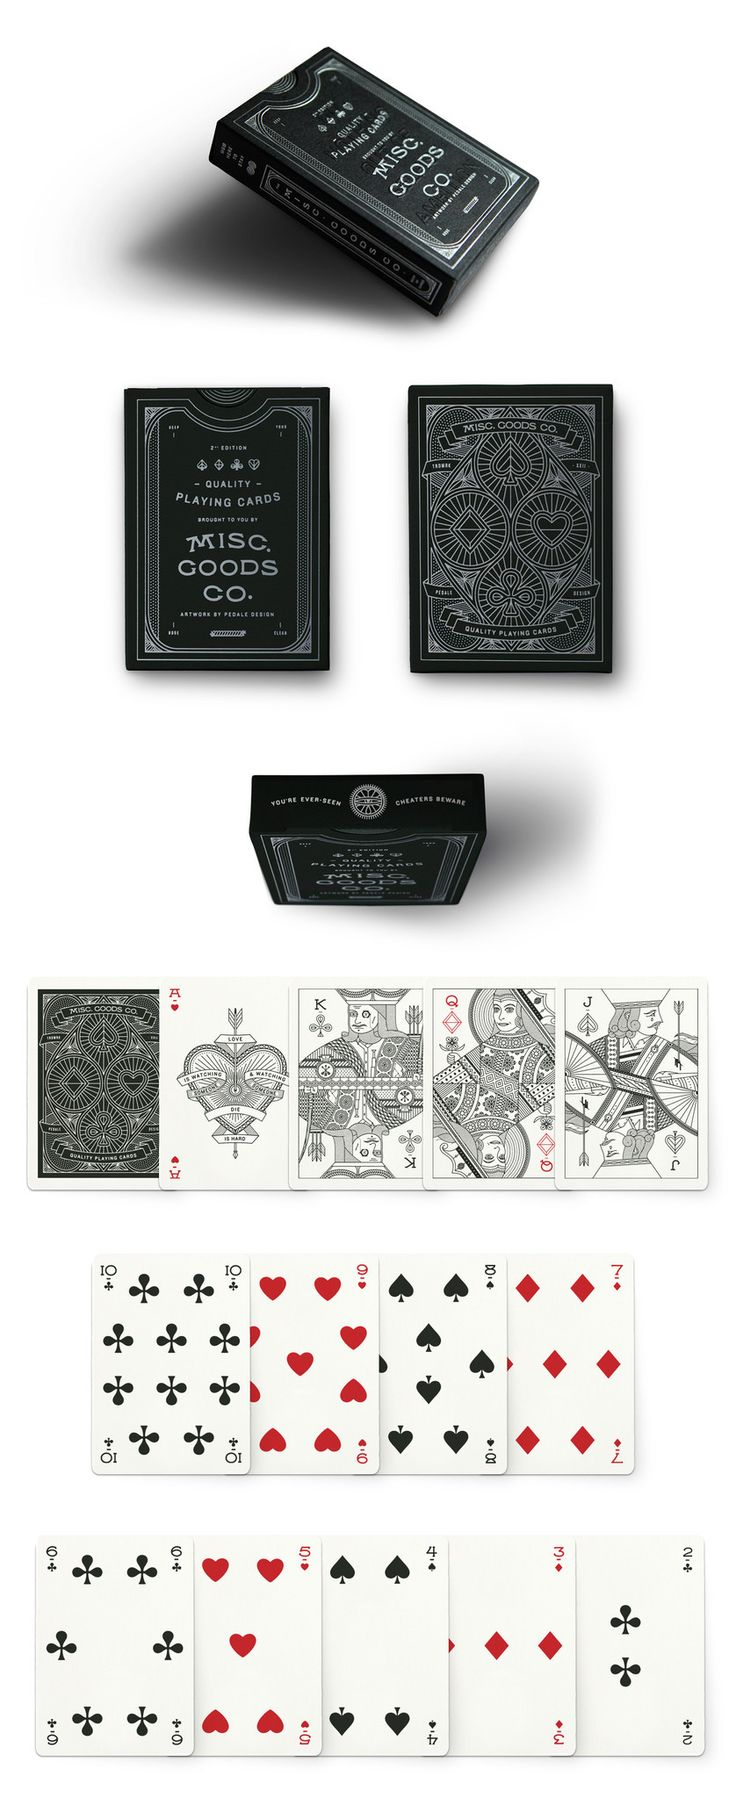 Tyler Deeb re-designed a deck of cards from front to back, in response to the staggering amount of support he received from his first KickStarter Project. Now, through Misc. Goods Co., Tyler will continue designing and developing new products including items based on his successful deck of playing cards.